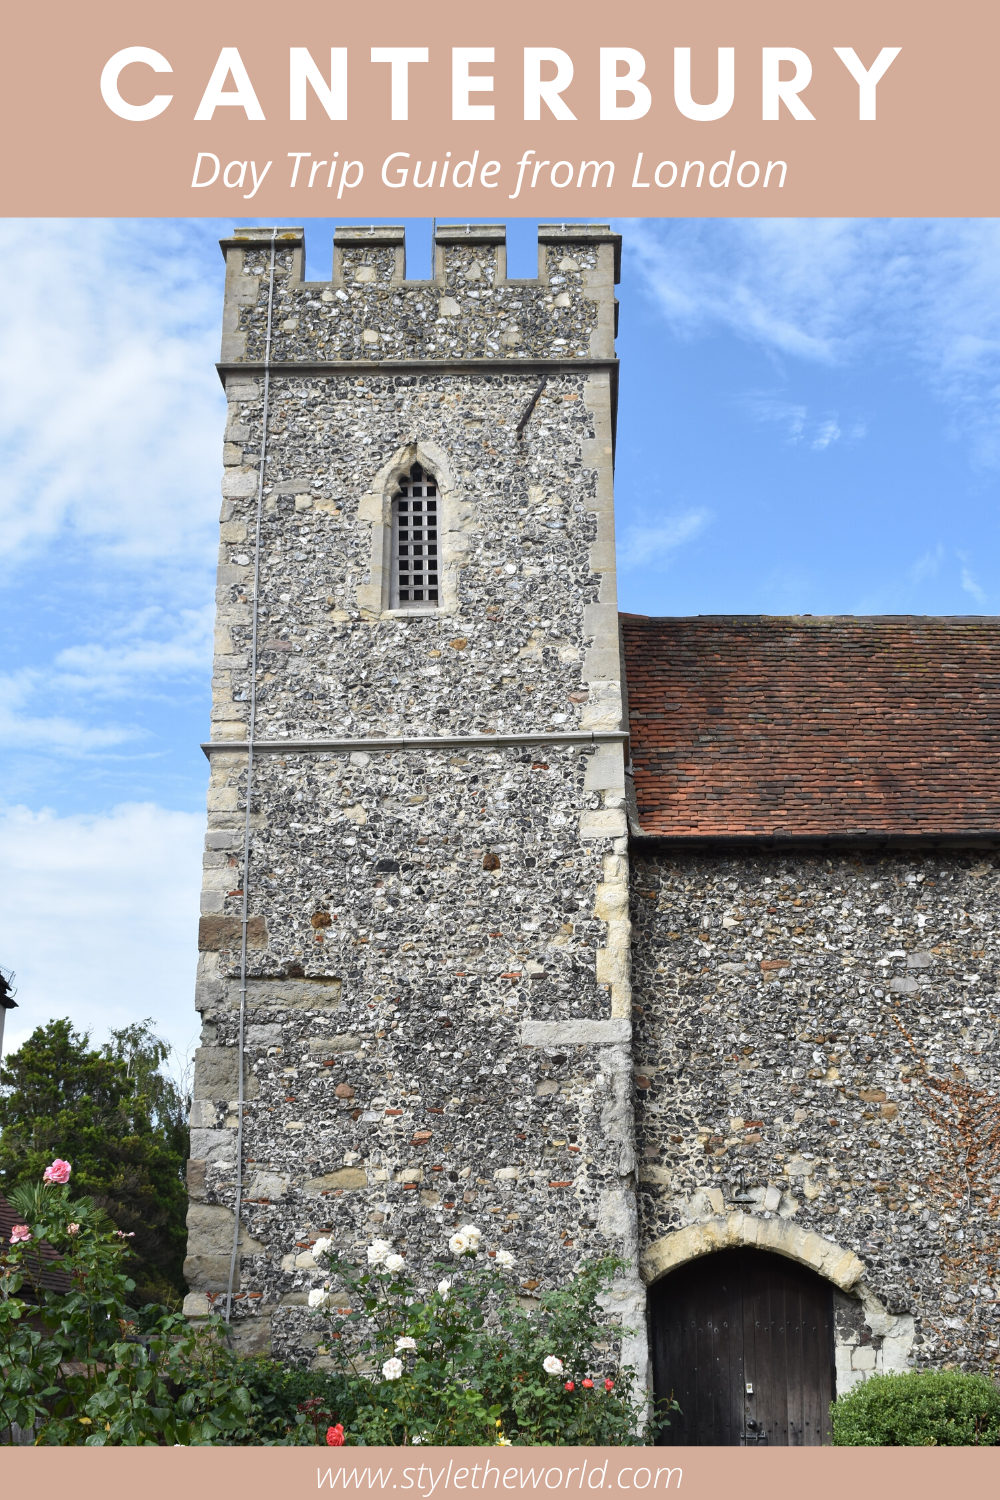 London Day Trip Inspiration | How to get to Canterbury from London | Things to do in Canterbury, Kent | #travelinspiration #londondaytrip #visitengland #canterbury #charmingplaces